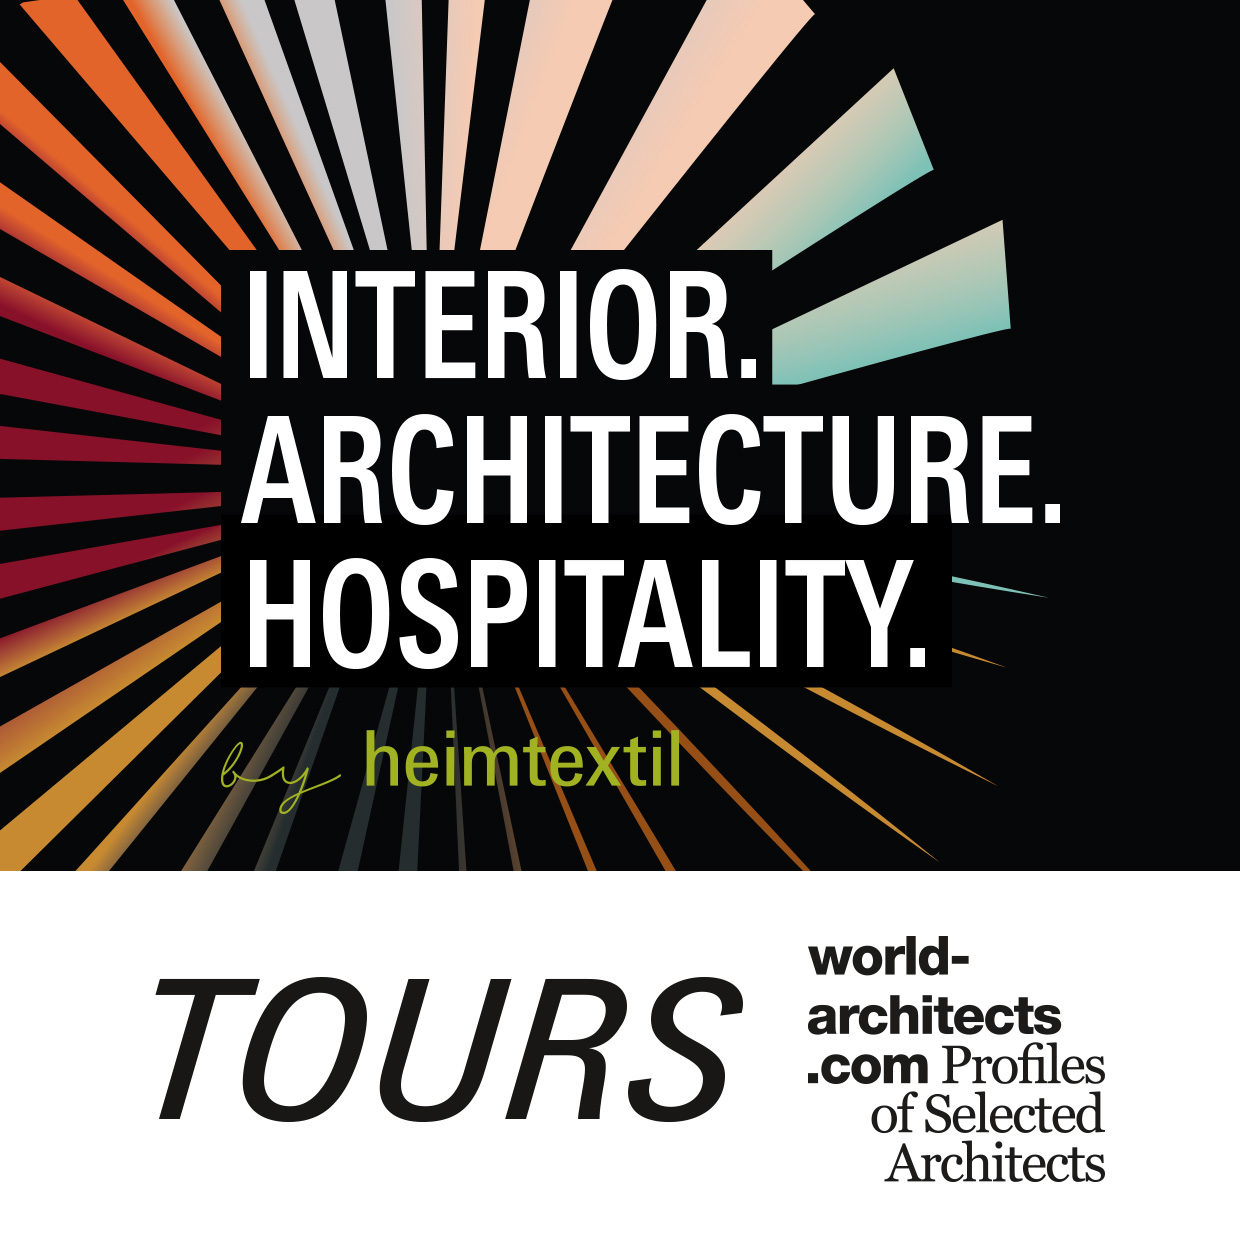 guided-tour-by-world-architects